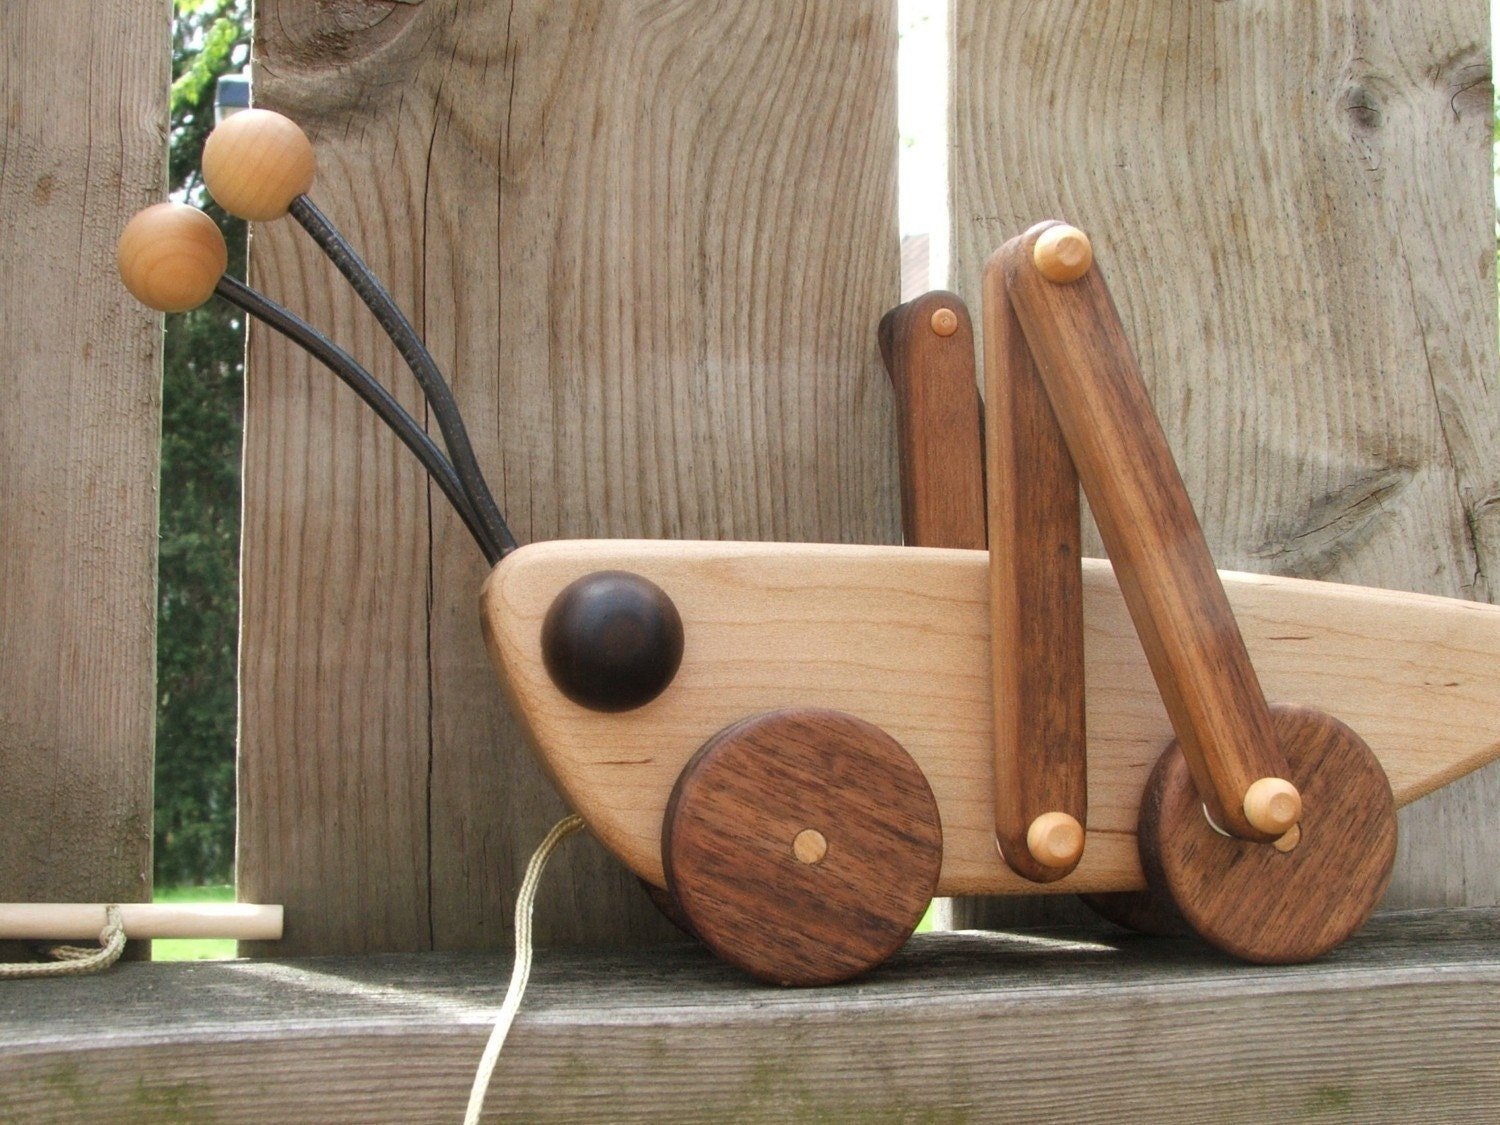 Toys Are Us Wooden Toys : Grasshopper wooden pull toy in maple and walnut by